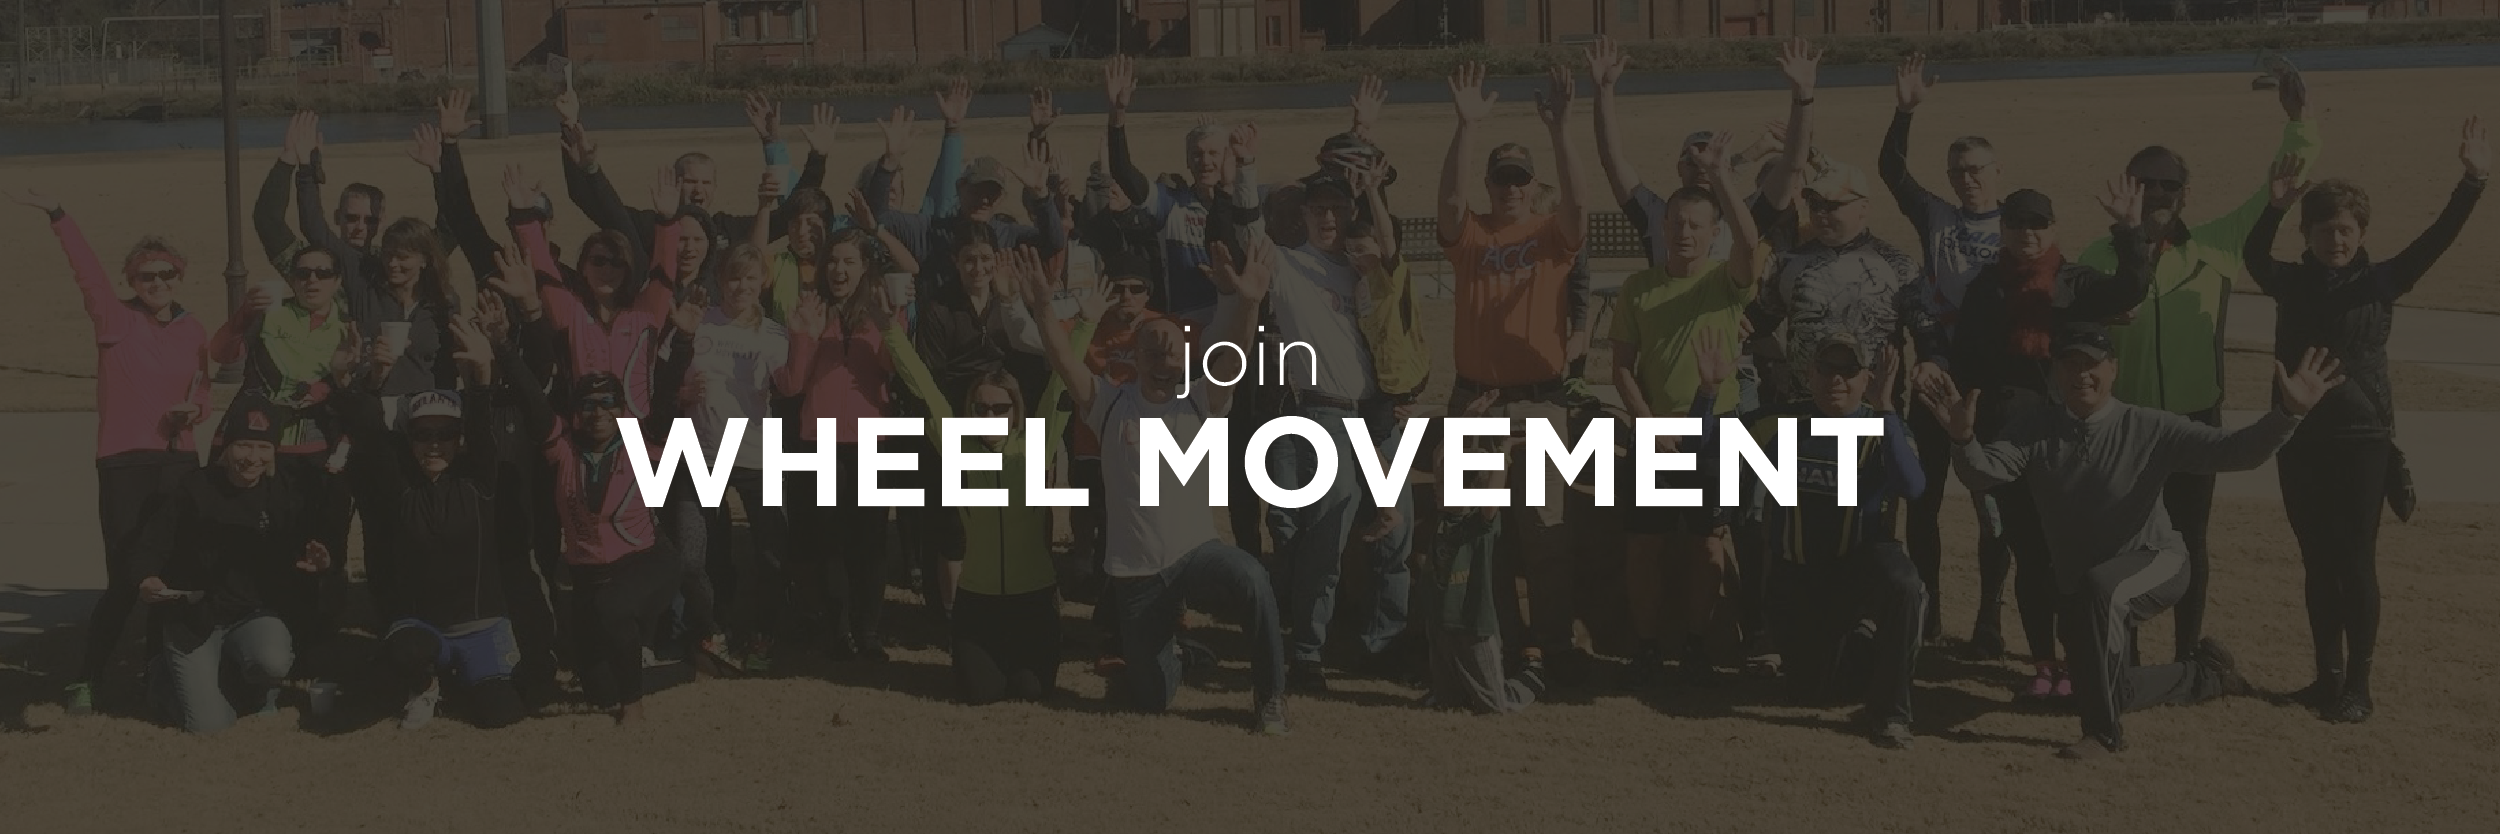 Join-Wheel-Movement-CSRA-Banner.png